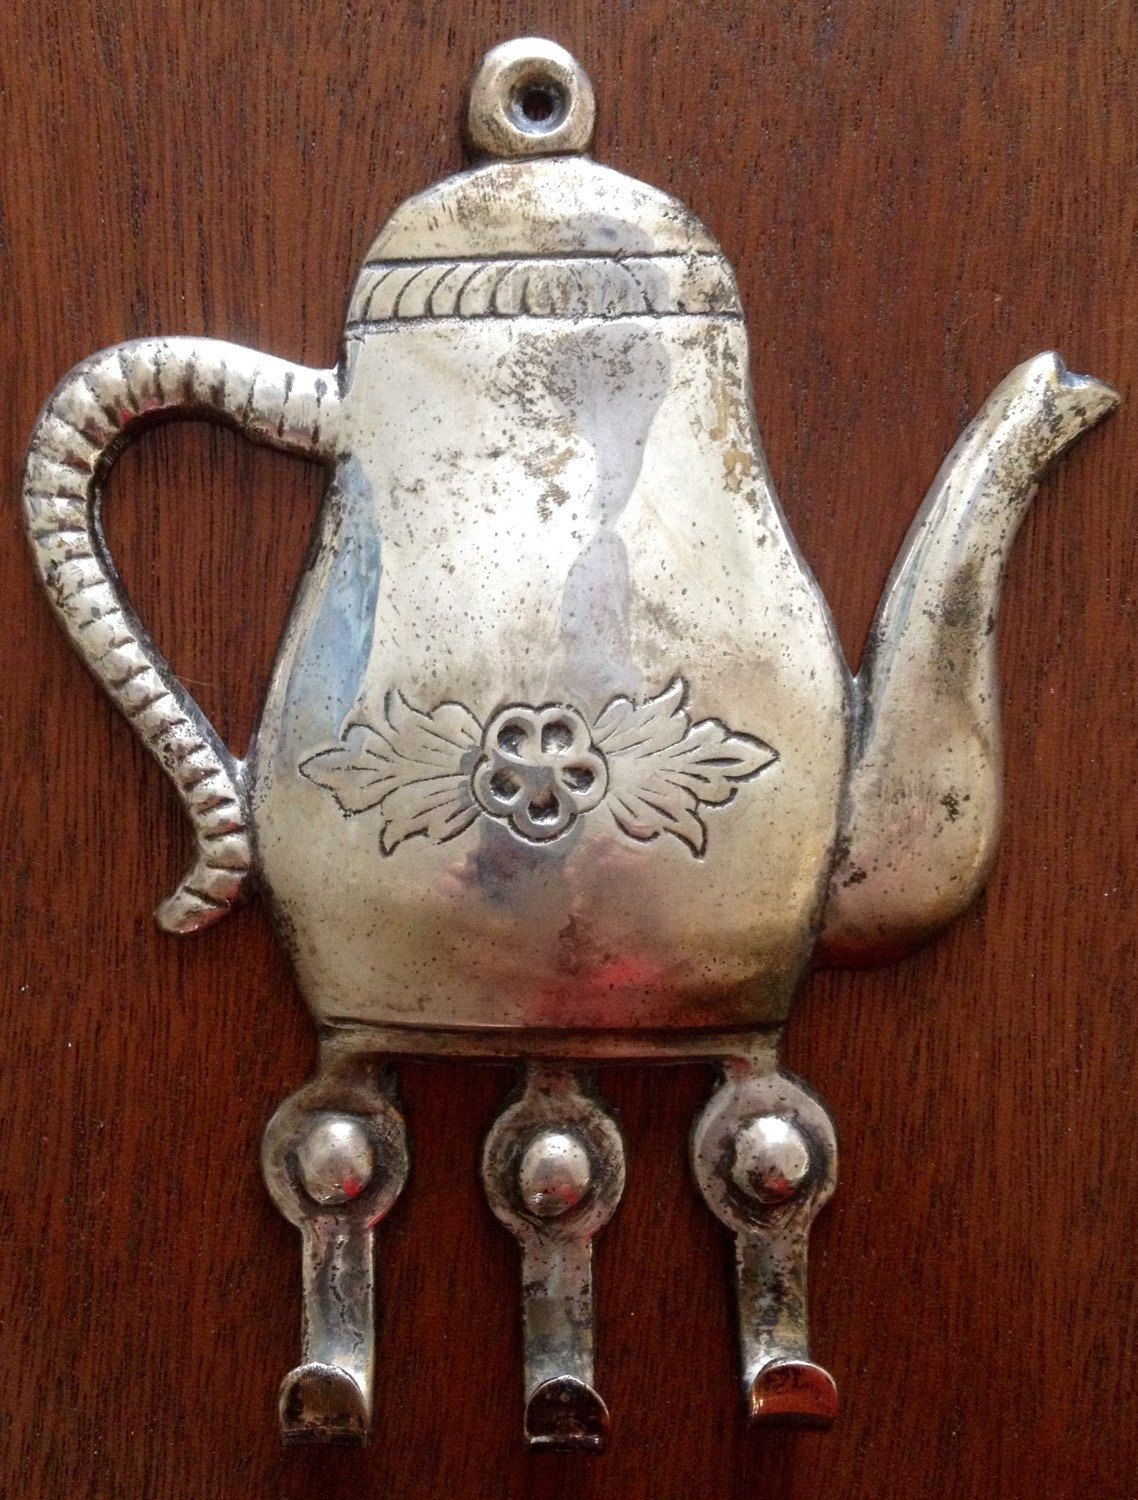 Vintage Silver Towel Hook Kitchen Hook Teapot Kitchen Towel Jewelry Hook Wall Hook Wall Hanger Rack Hook Tea L Jewelry Hooks Towel Hooks Vintage Silver